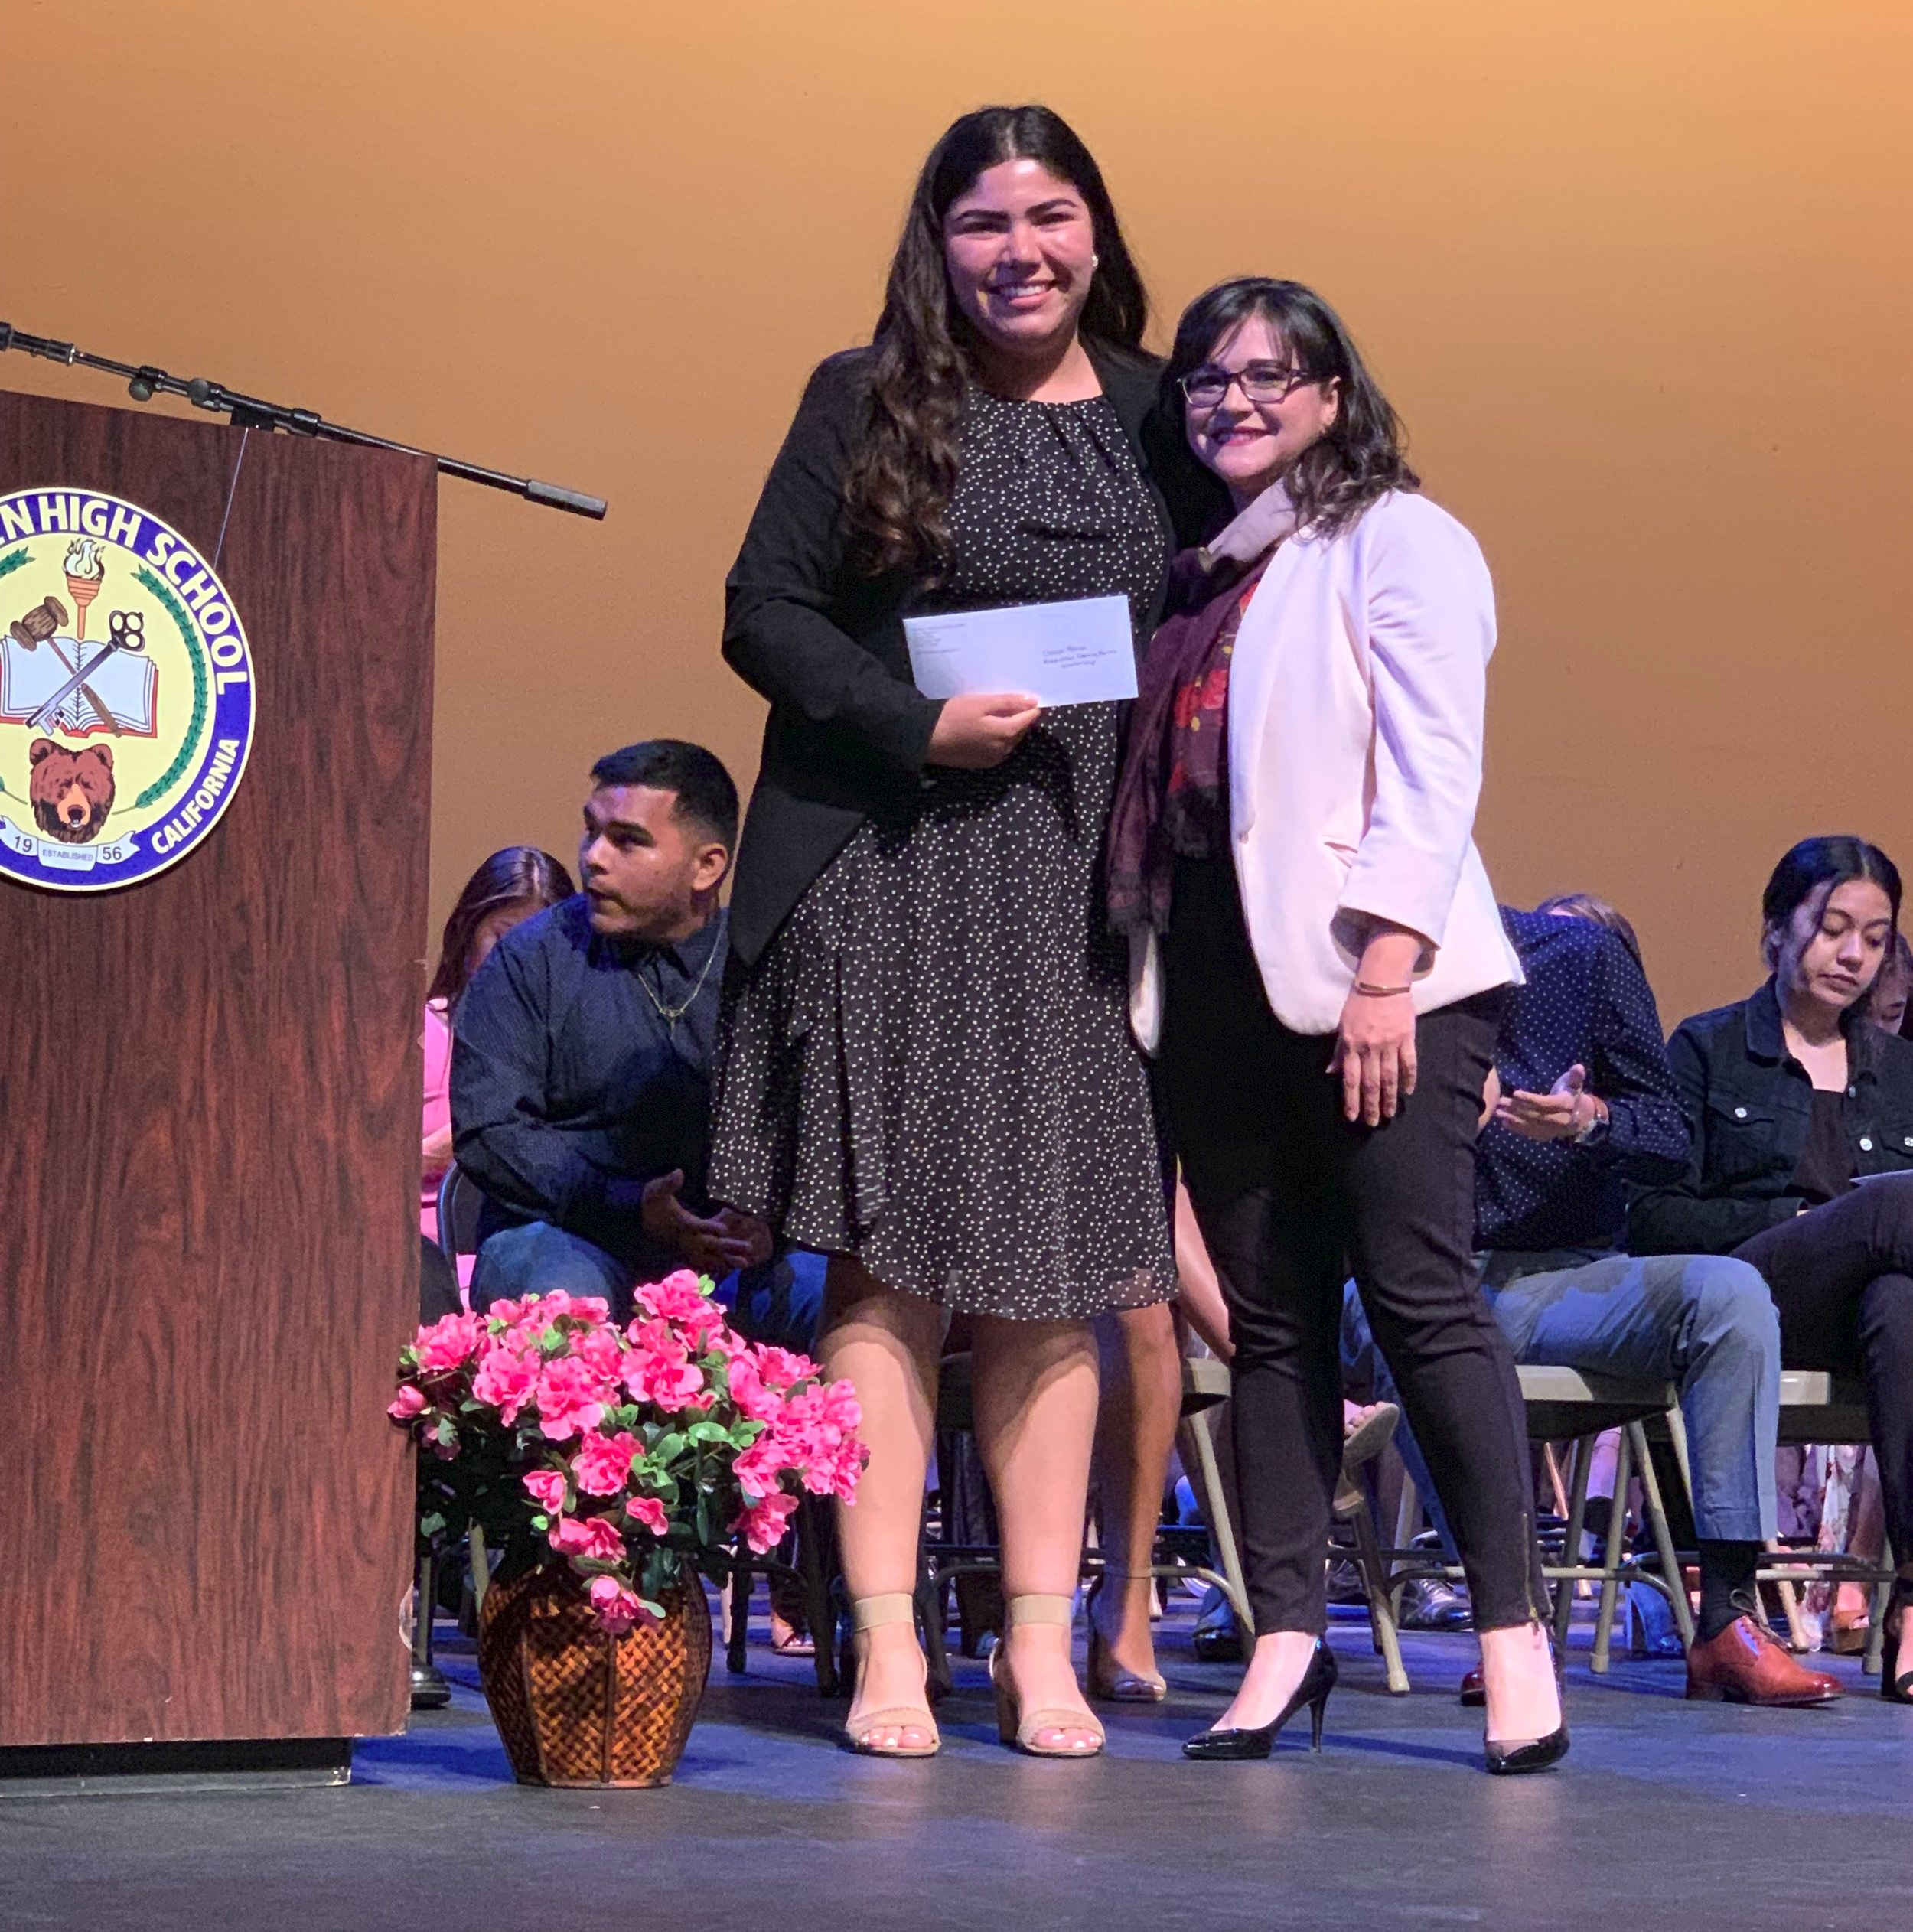 Warren High School graduating senior Cheyla Farias received the scholarship from Rockview Family Farms' Tatiana Rodriguez at an assembly on May 23.